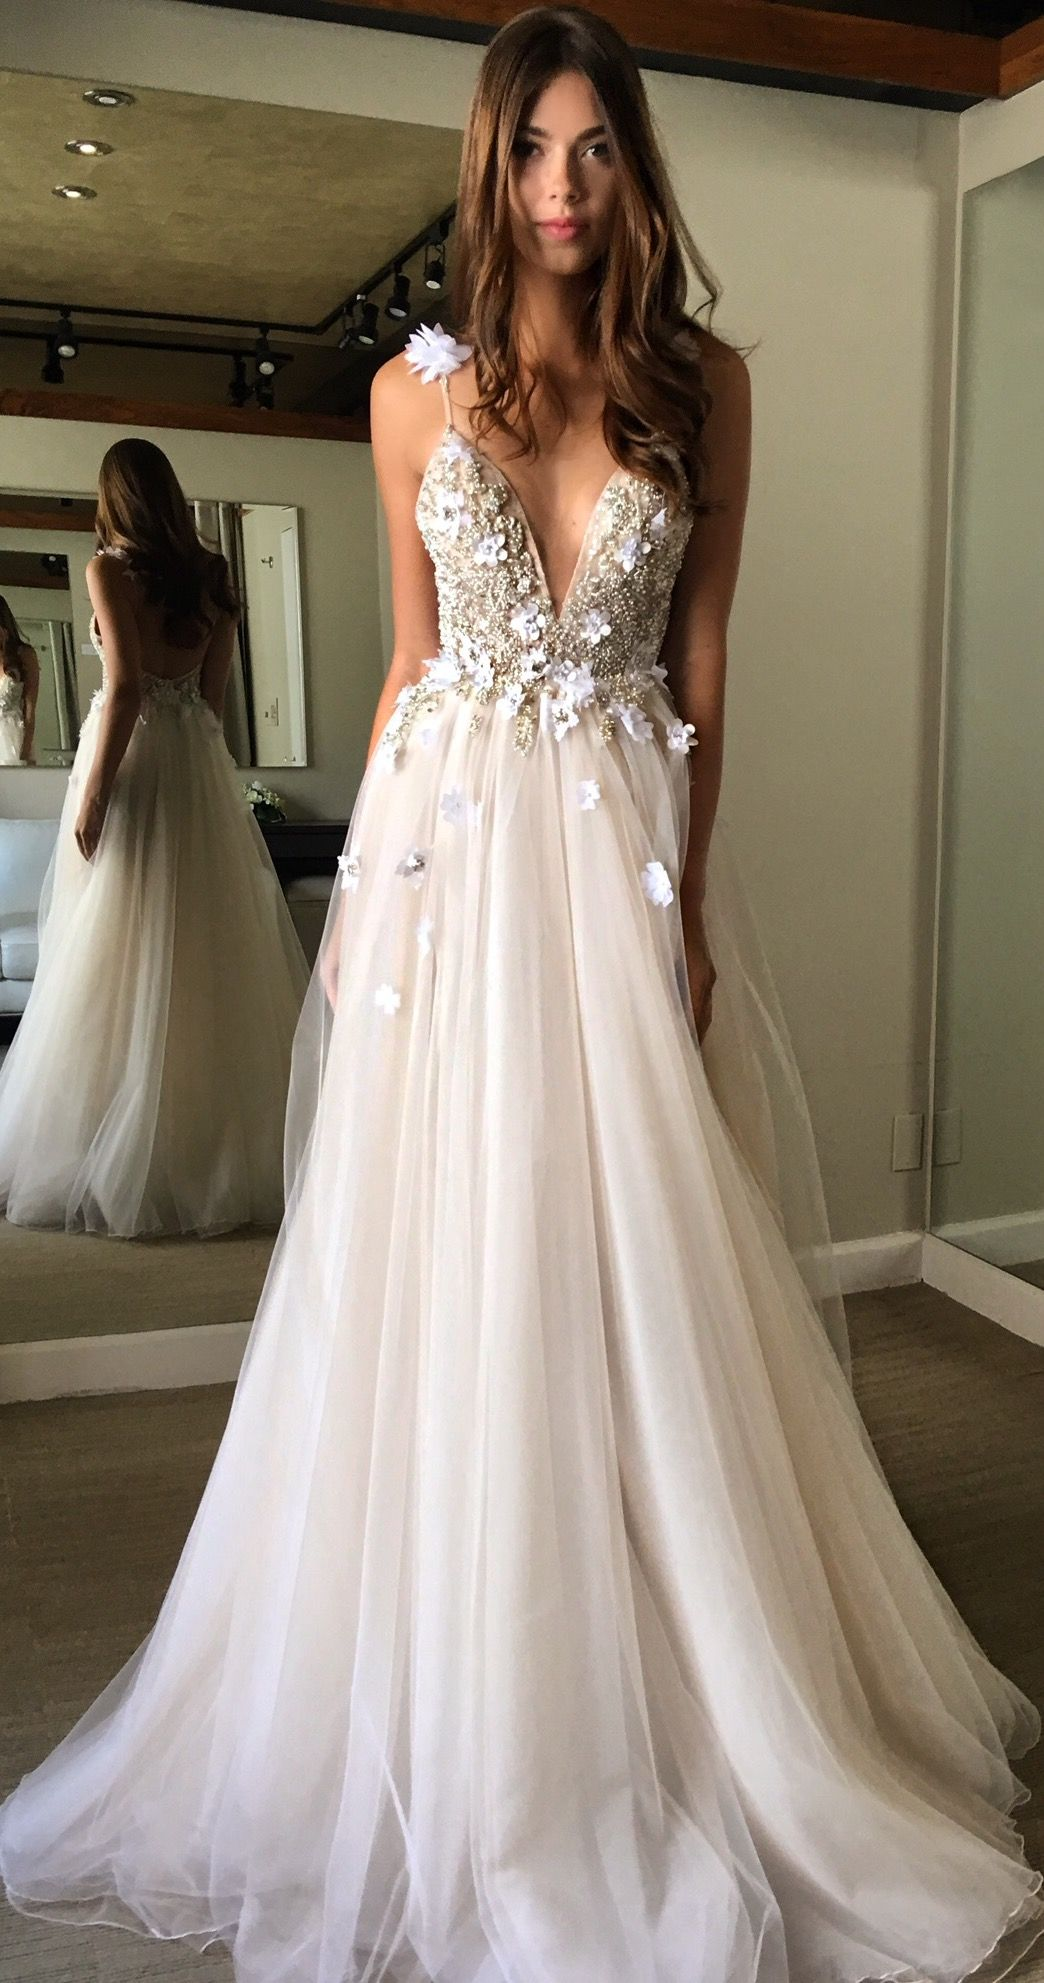 Muse by berta my wedding fantasy pinterest muse wedding